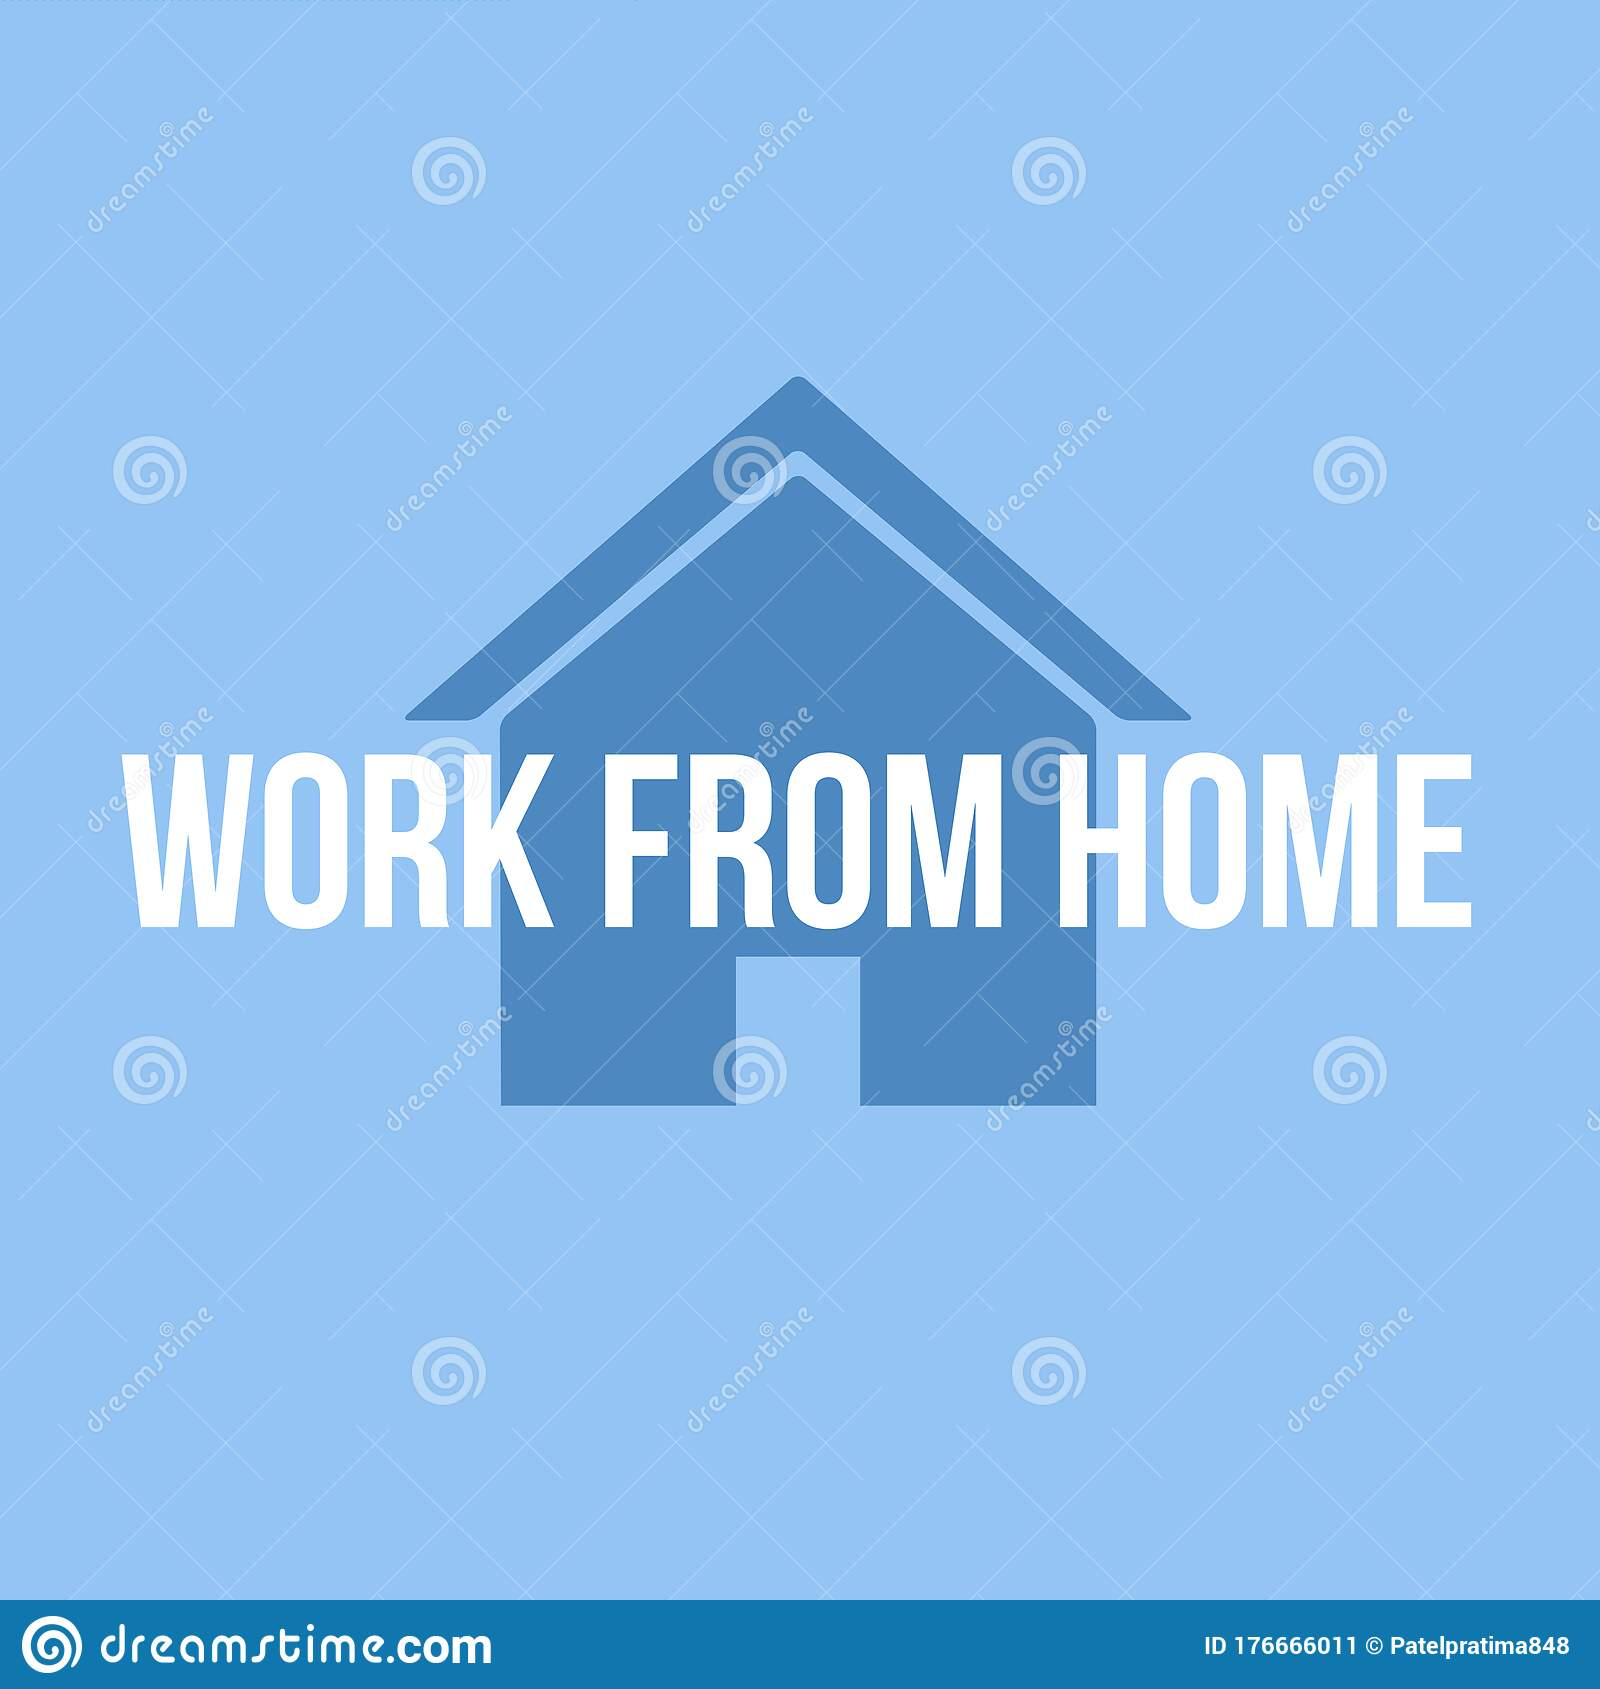 Abstract Background Of Work From Home Job Quarantine Stay Home Safe Graphic Design Illustration Wallpaper Stock Illustration Illustration Of Graphic Home 176666011